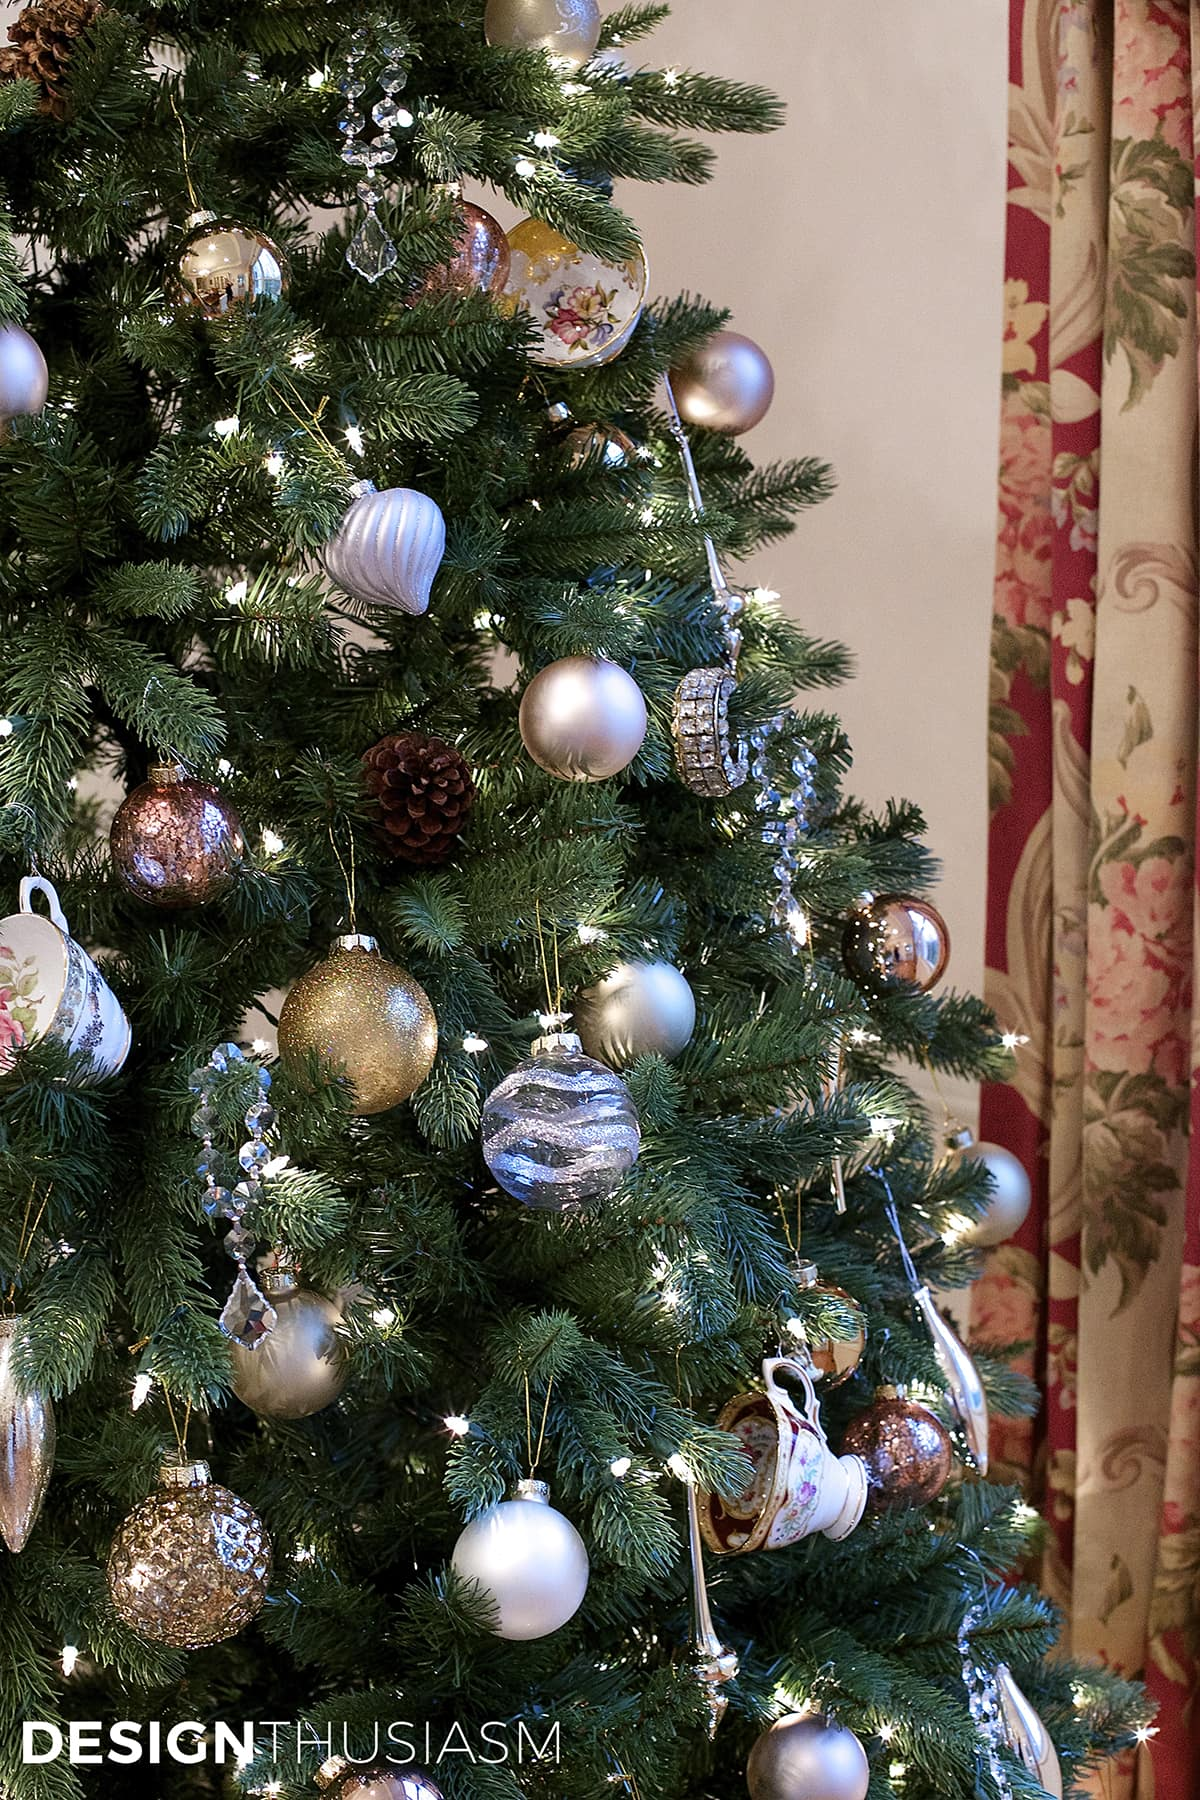 Add Personal Style To Your Christmas Tree Decorating - Designthusiasmcom